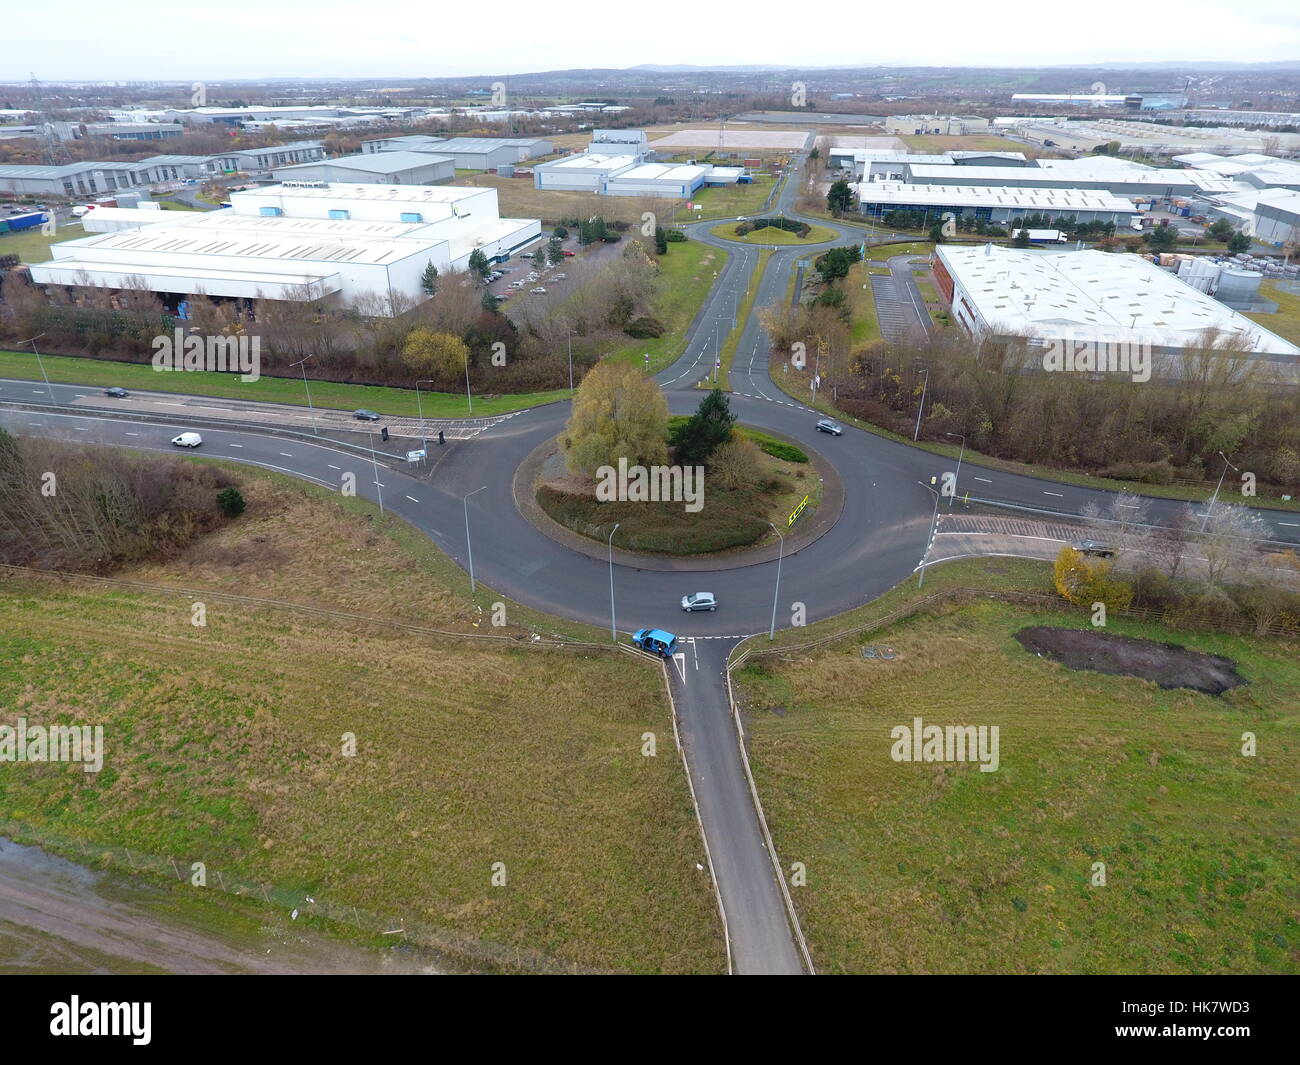 Aerial photograph of a roundabout - Stock Image